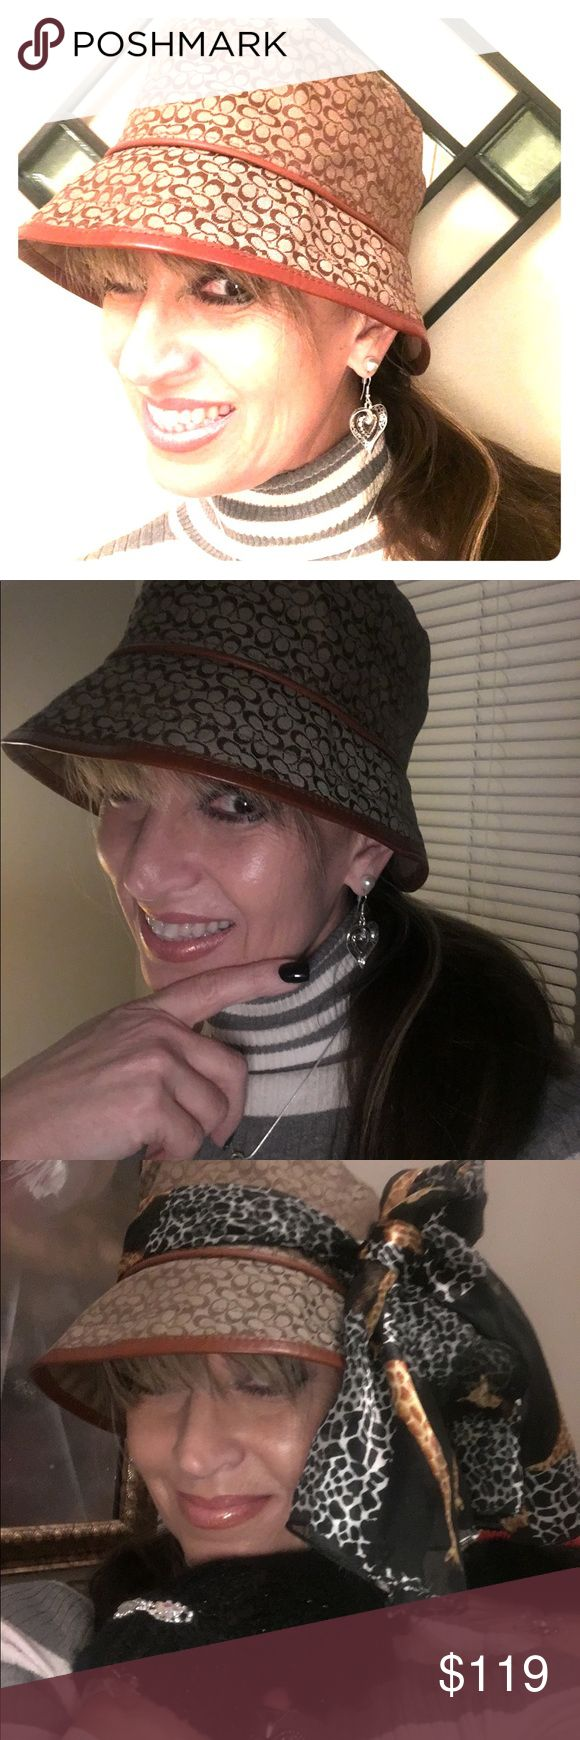 Coach Hat Classic All Seasons Classic Beige & Brown - Rim can be worn turned UP or DOWN or a Combination, and may be embellished with your Favorite Scarf or Pin - get Creative in Fine Style! Coach Accessories Hats